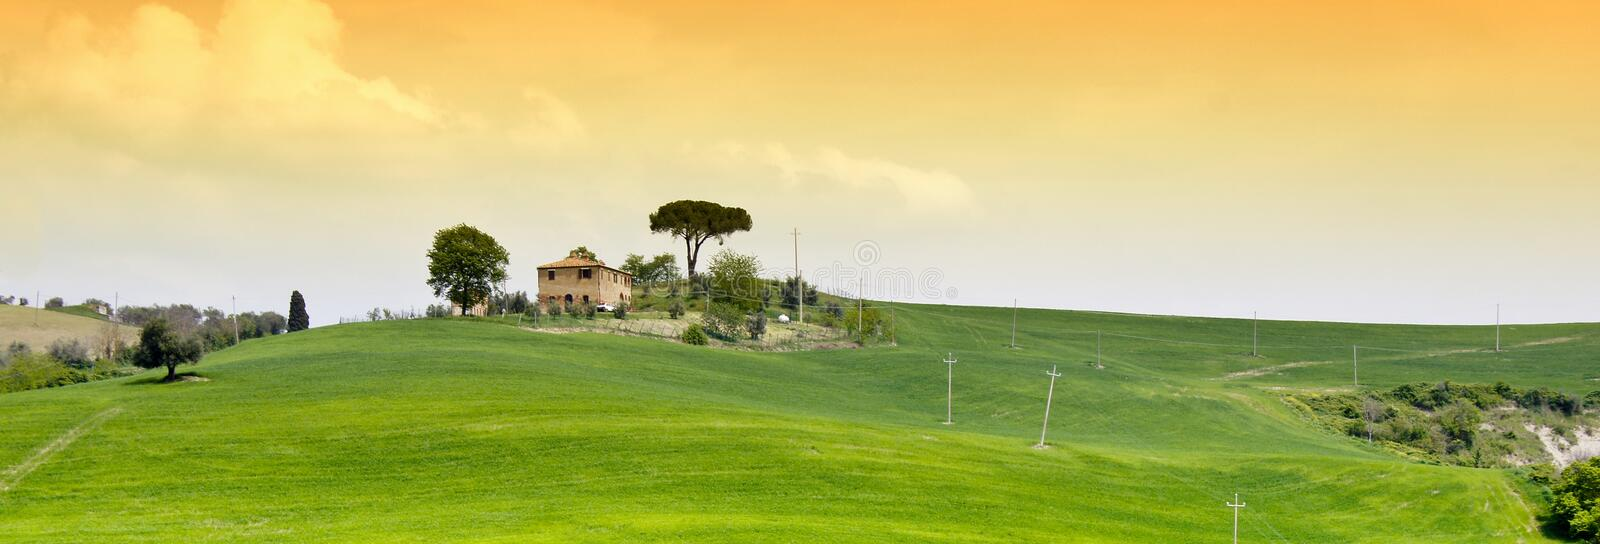 Download House on hilltop stock image. Image of tranquility, hillside - 19380591